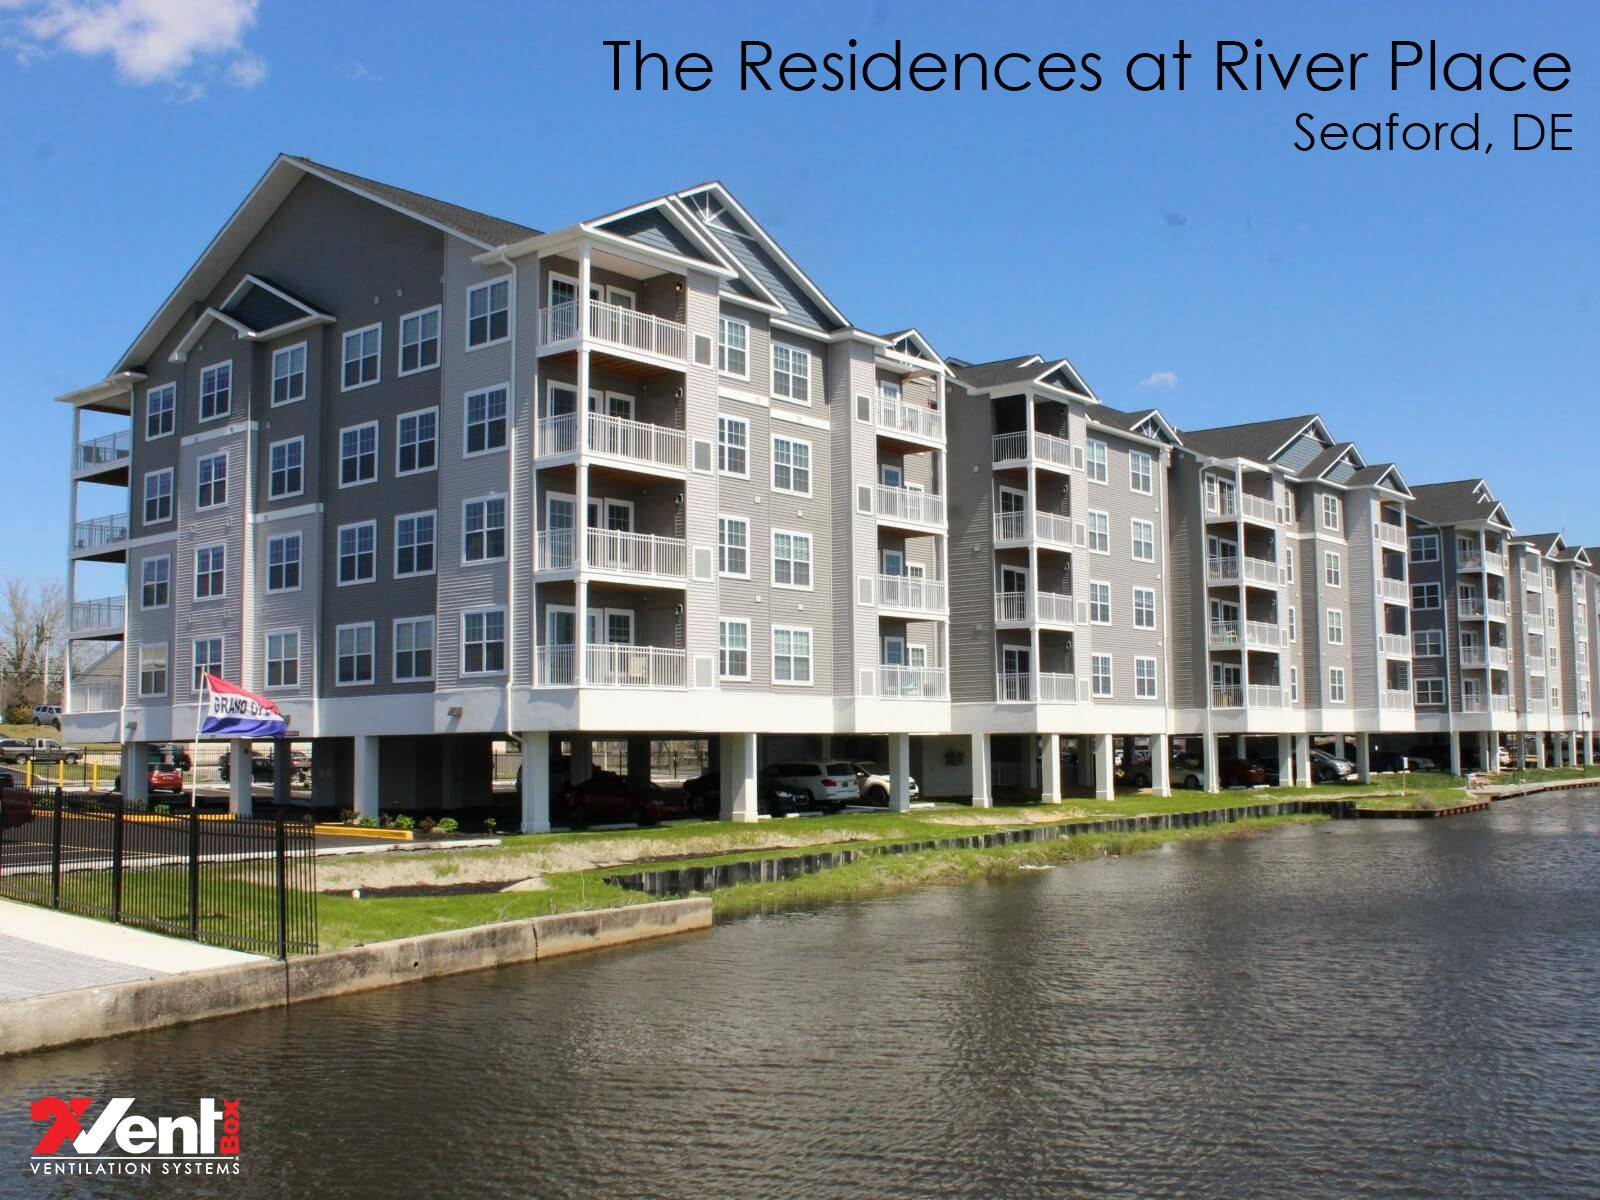 The Residences at River Place